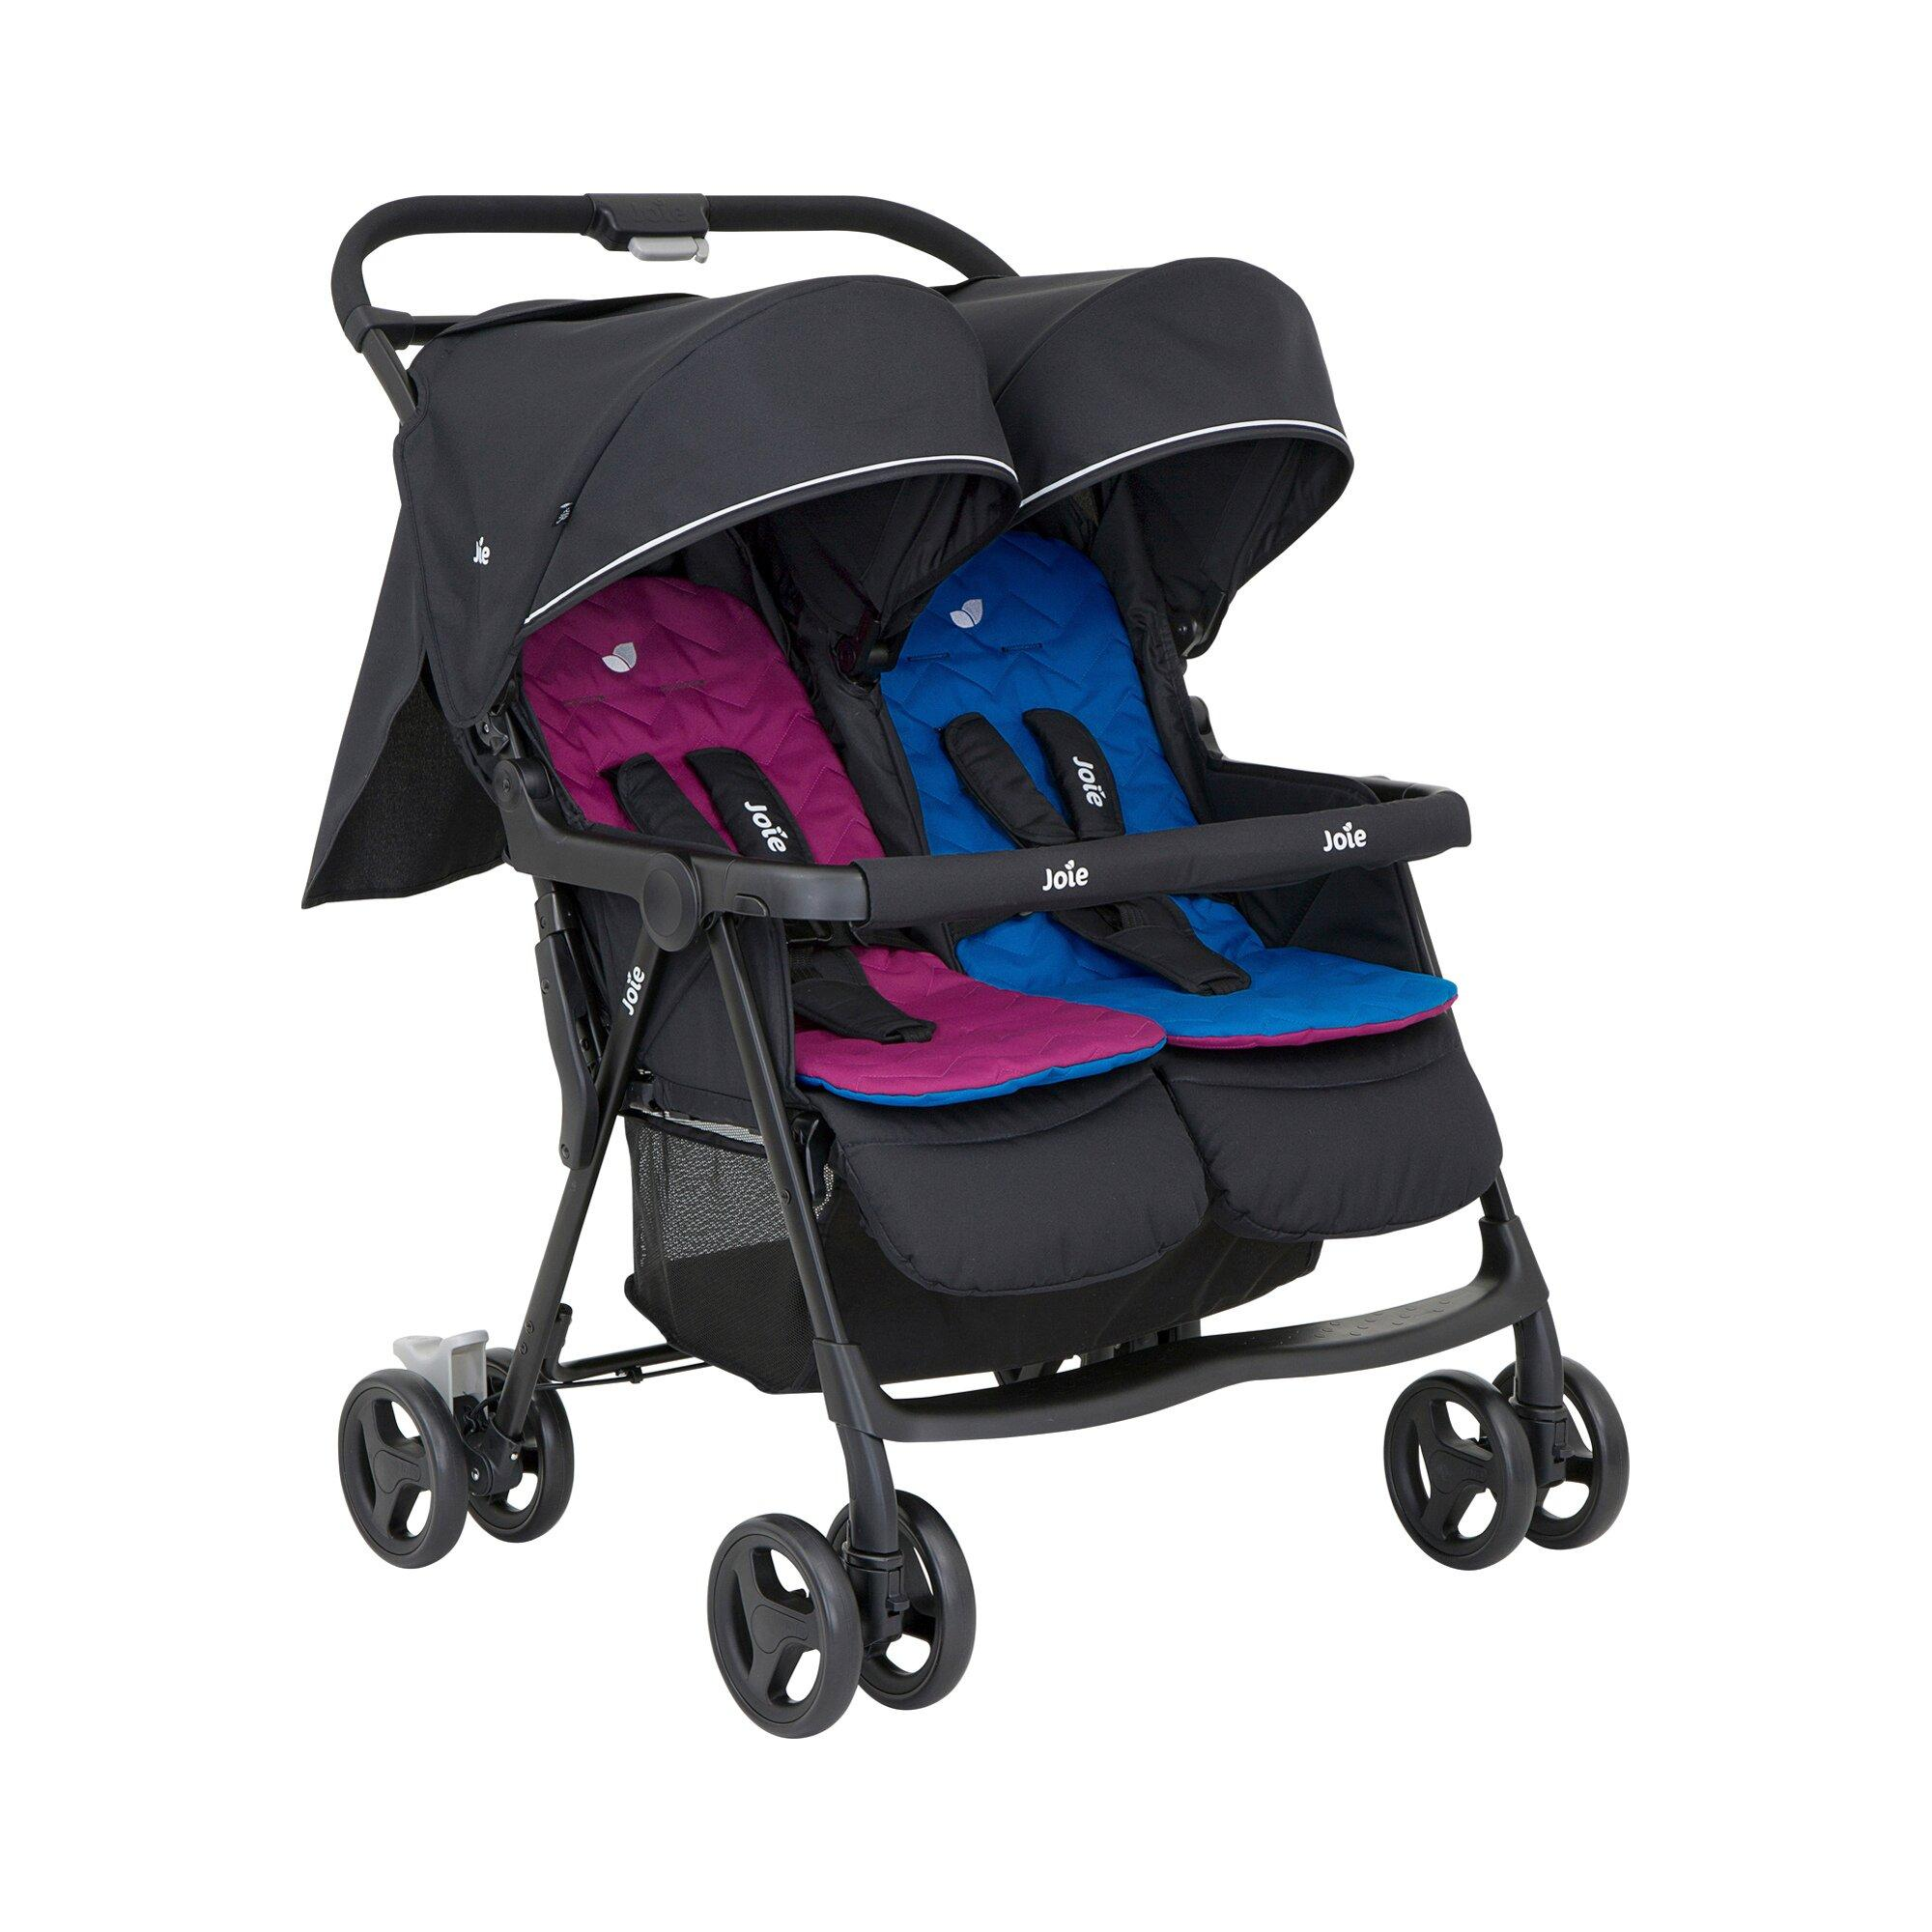 Aire Twin Zwillings- und Geschwisterbuggy